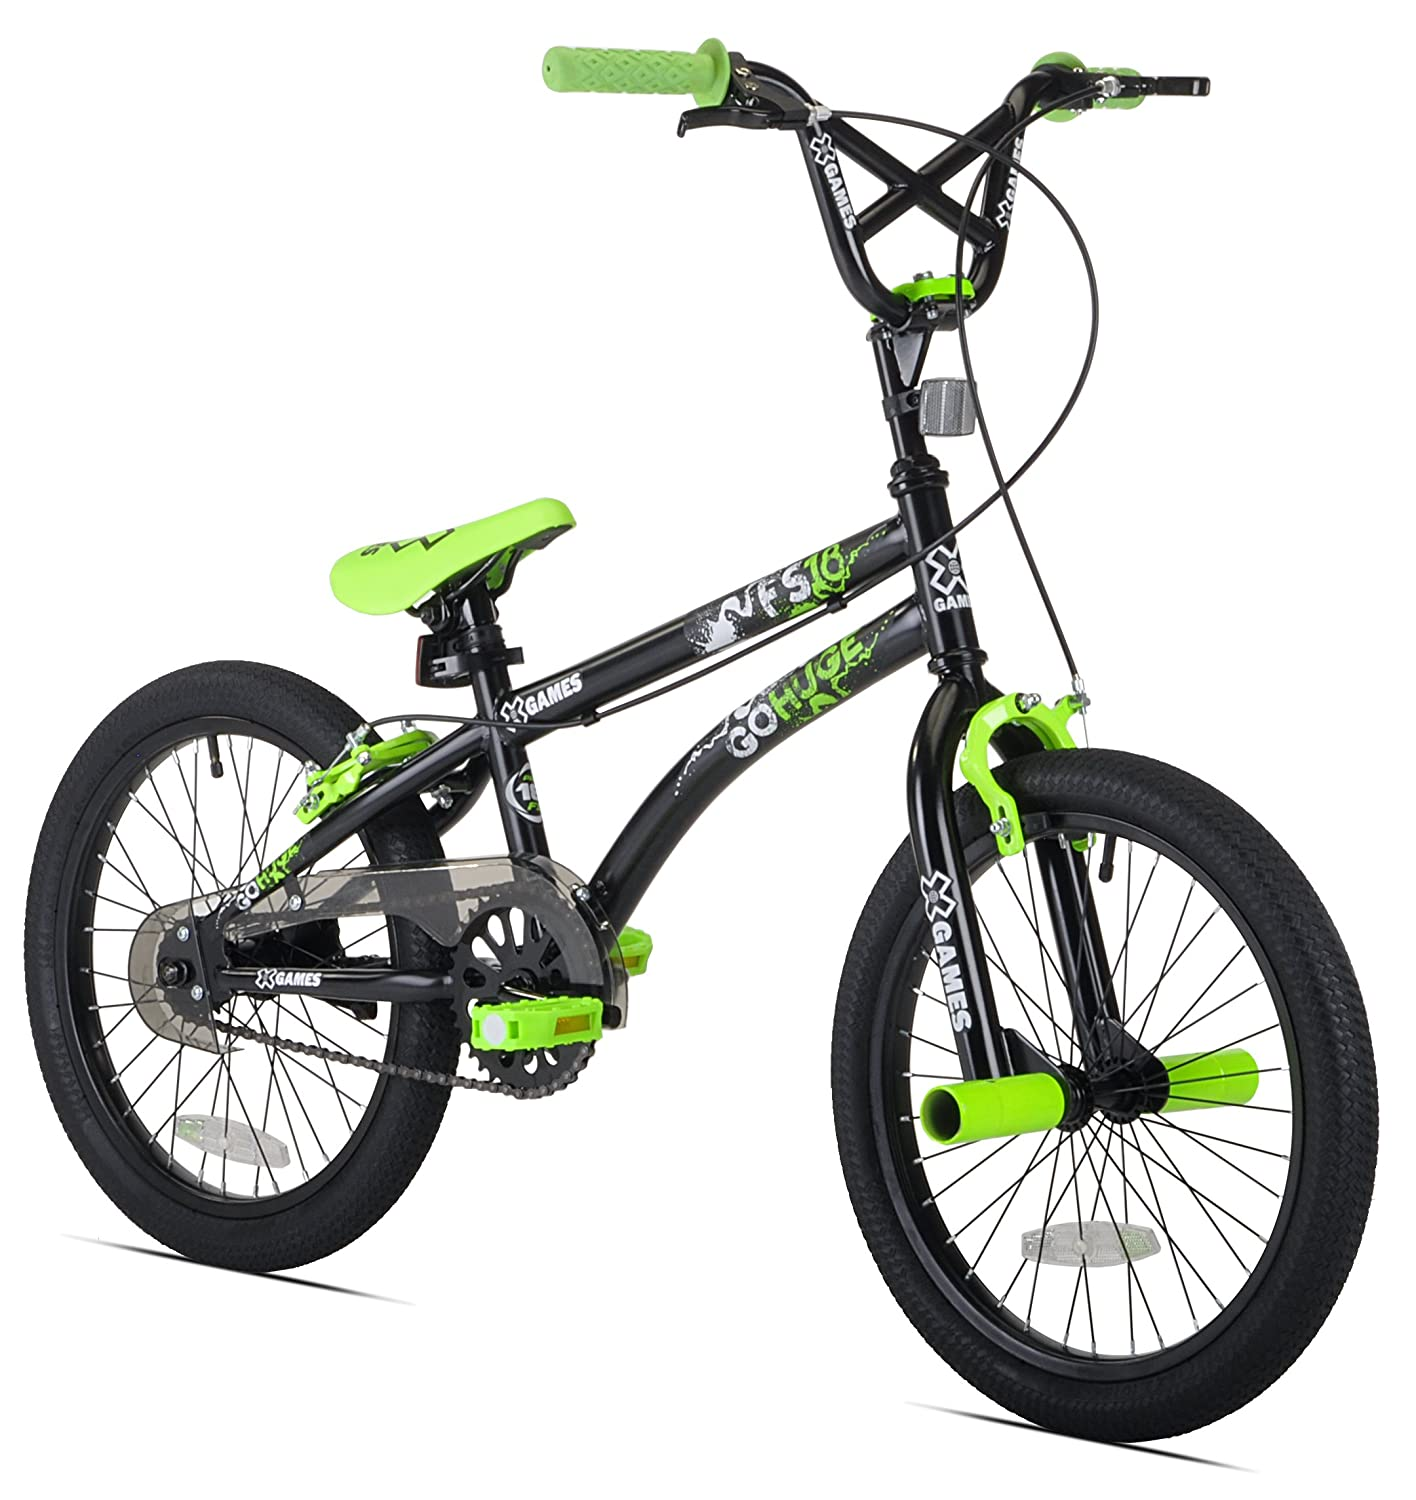 Bikes For Boys FS Boys Bike Inch